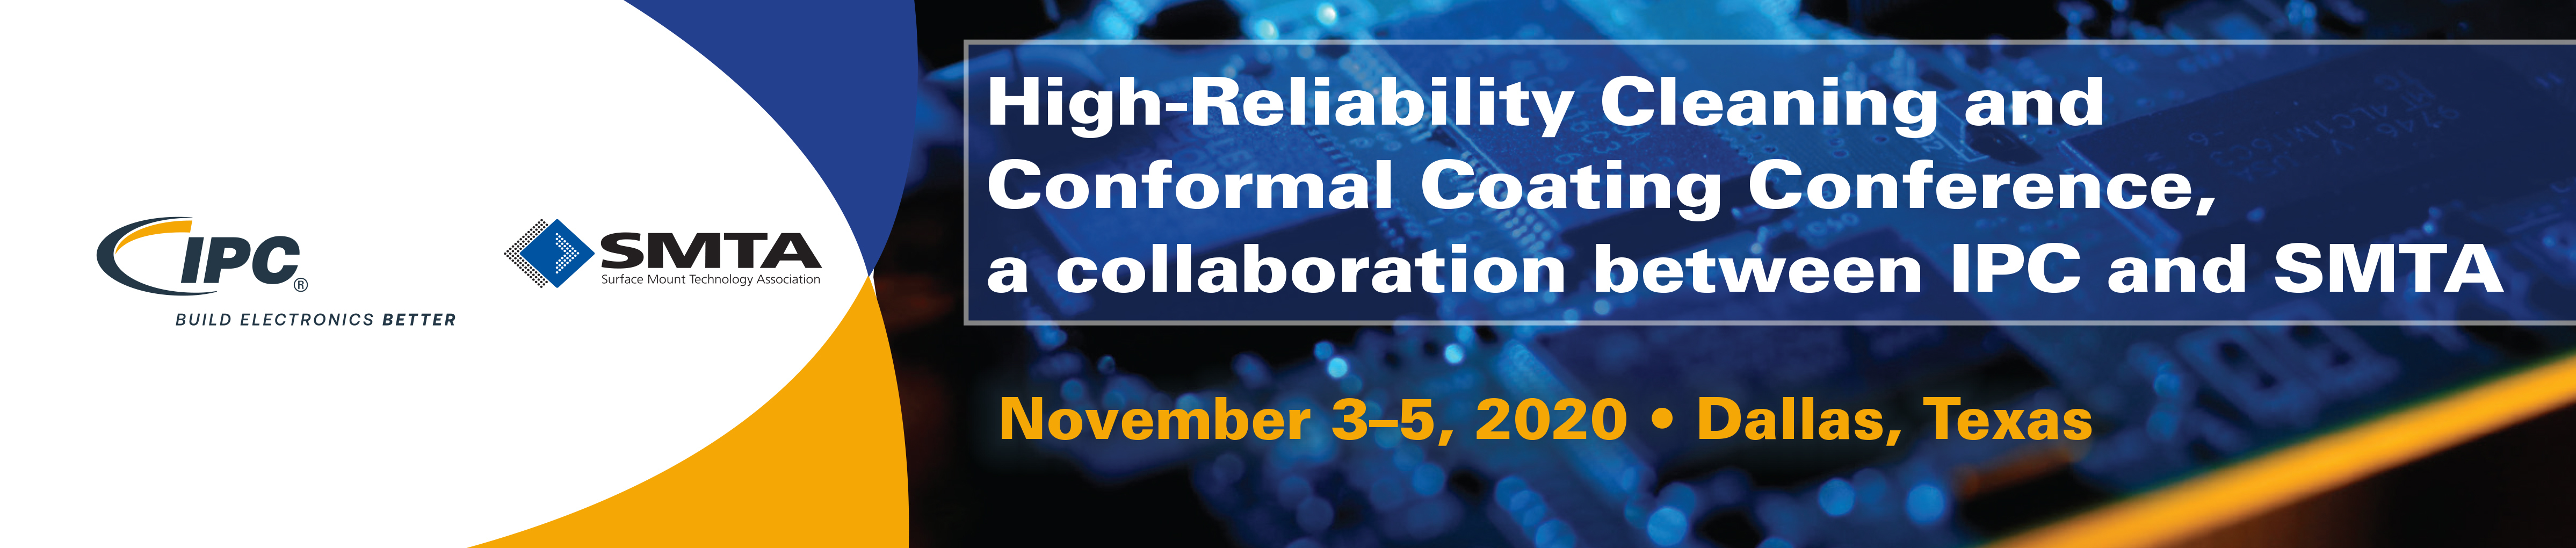 High-Reliability Cleaning & Conformal Coating Conference in cooperation with IPC and SMTA